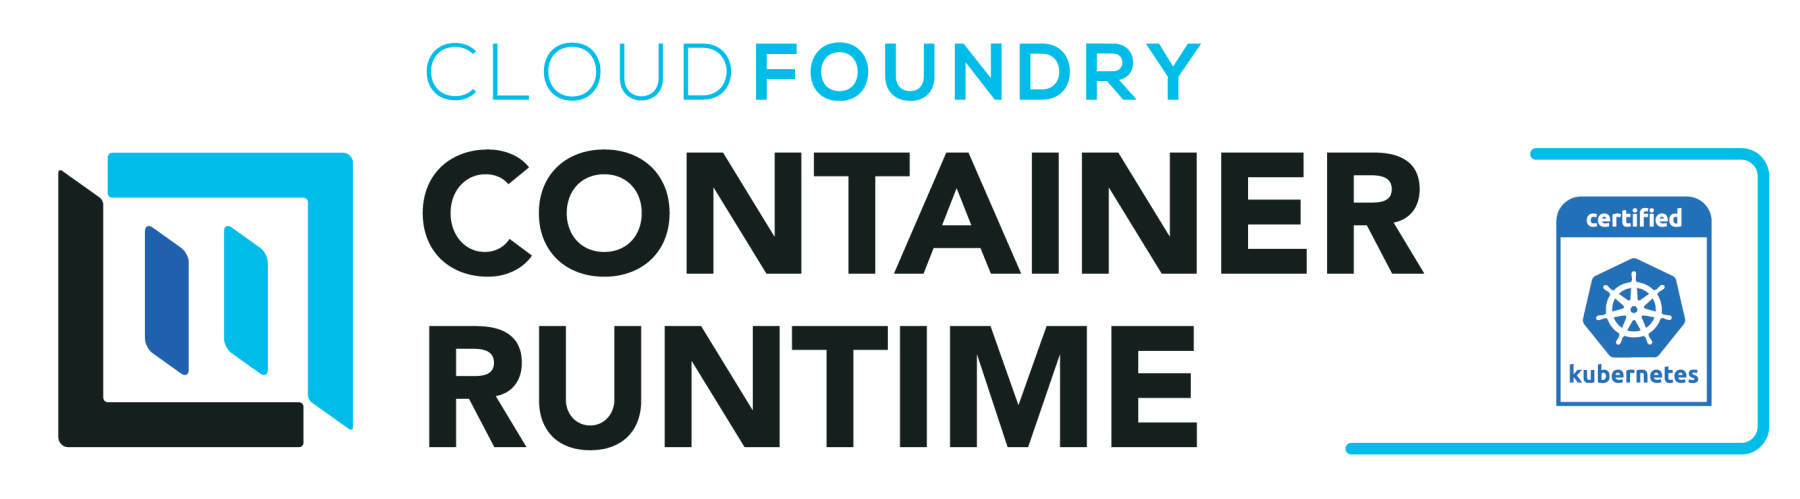 Cloud foundry container runtime gets kubernetes certified xflitez Gallery